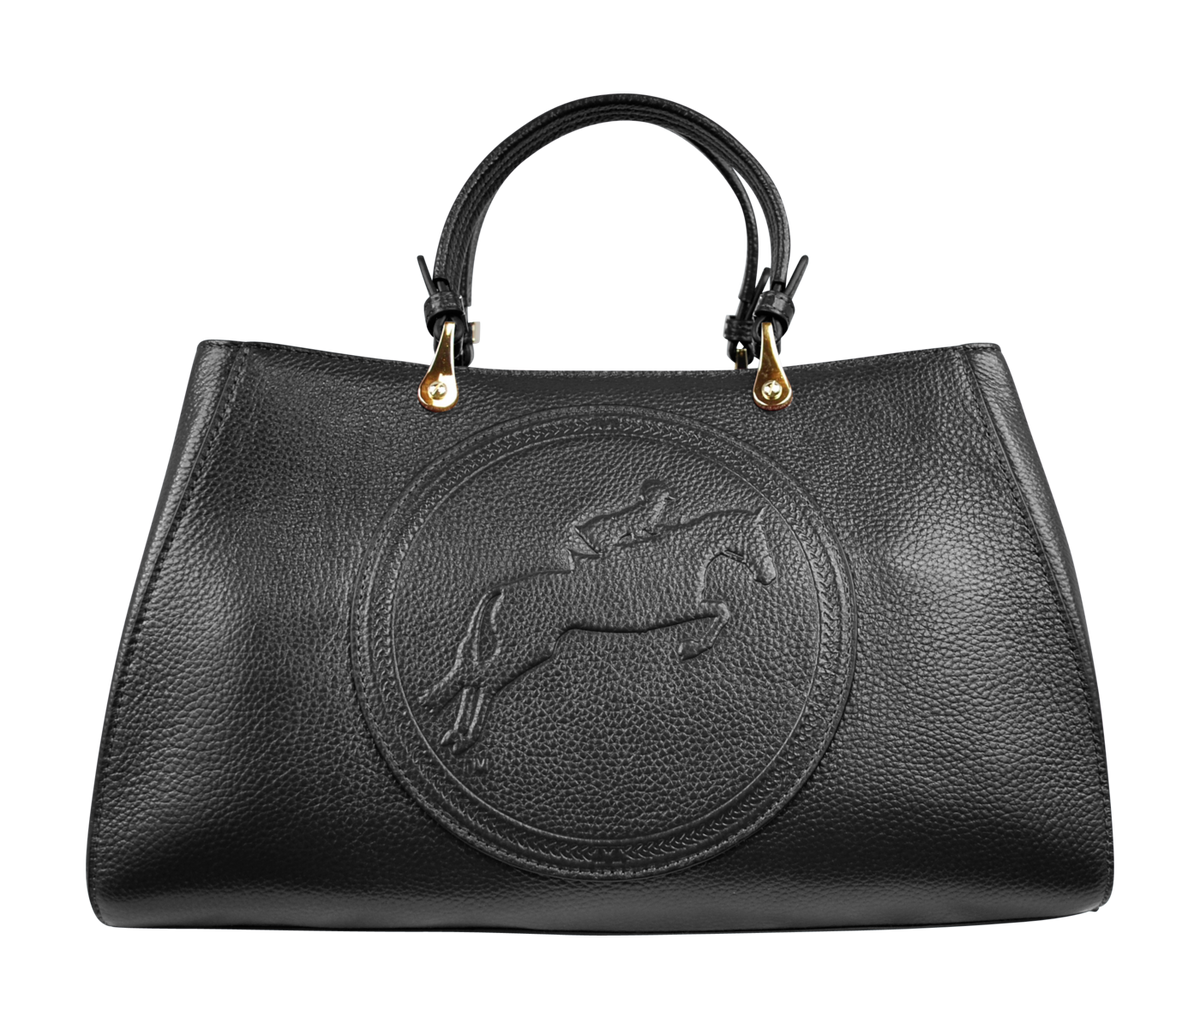 Tucker Tweed Leather Handbags Black / Hunter/Jumper Sedgefield Legacy: Hunter/Jumper